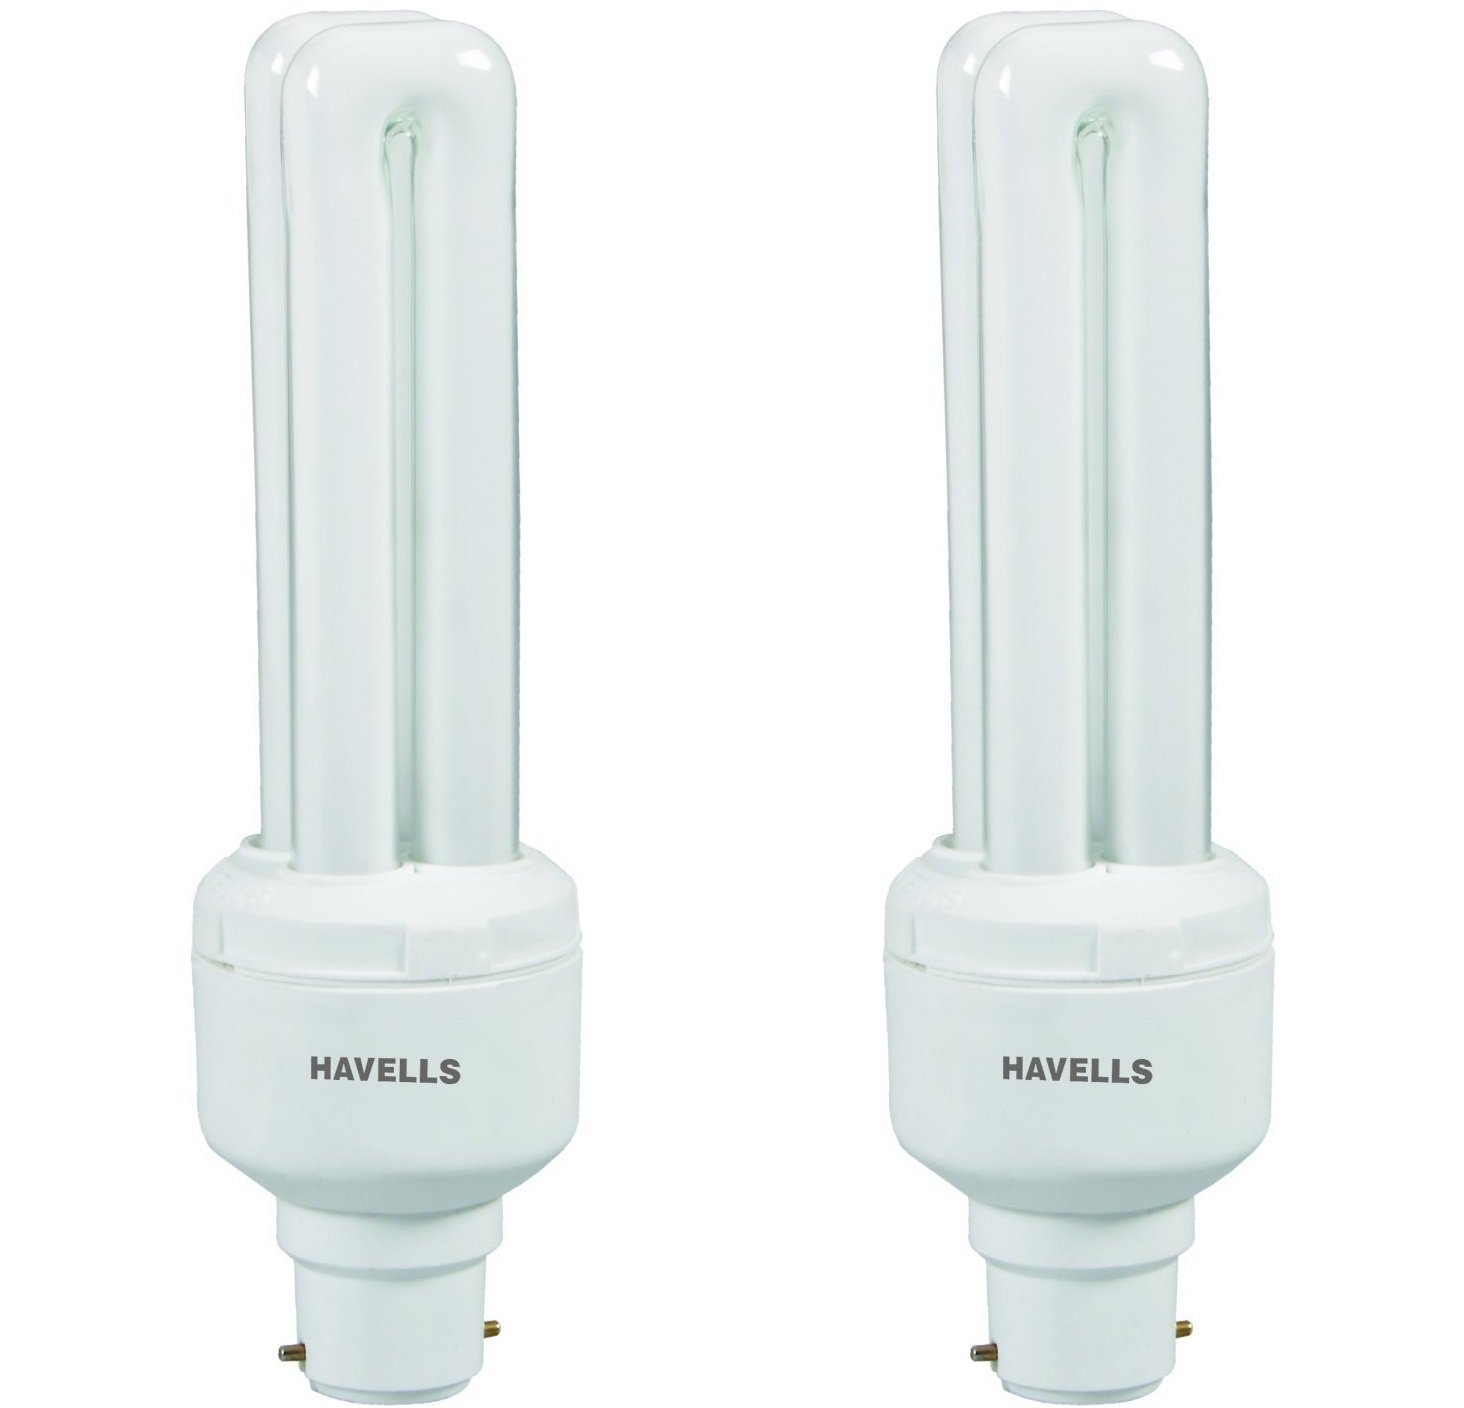 Havells DU B-22 15-Watt CFL Bulb (Cool Day Light and Pack of 2) Image